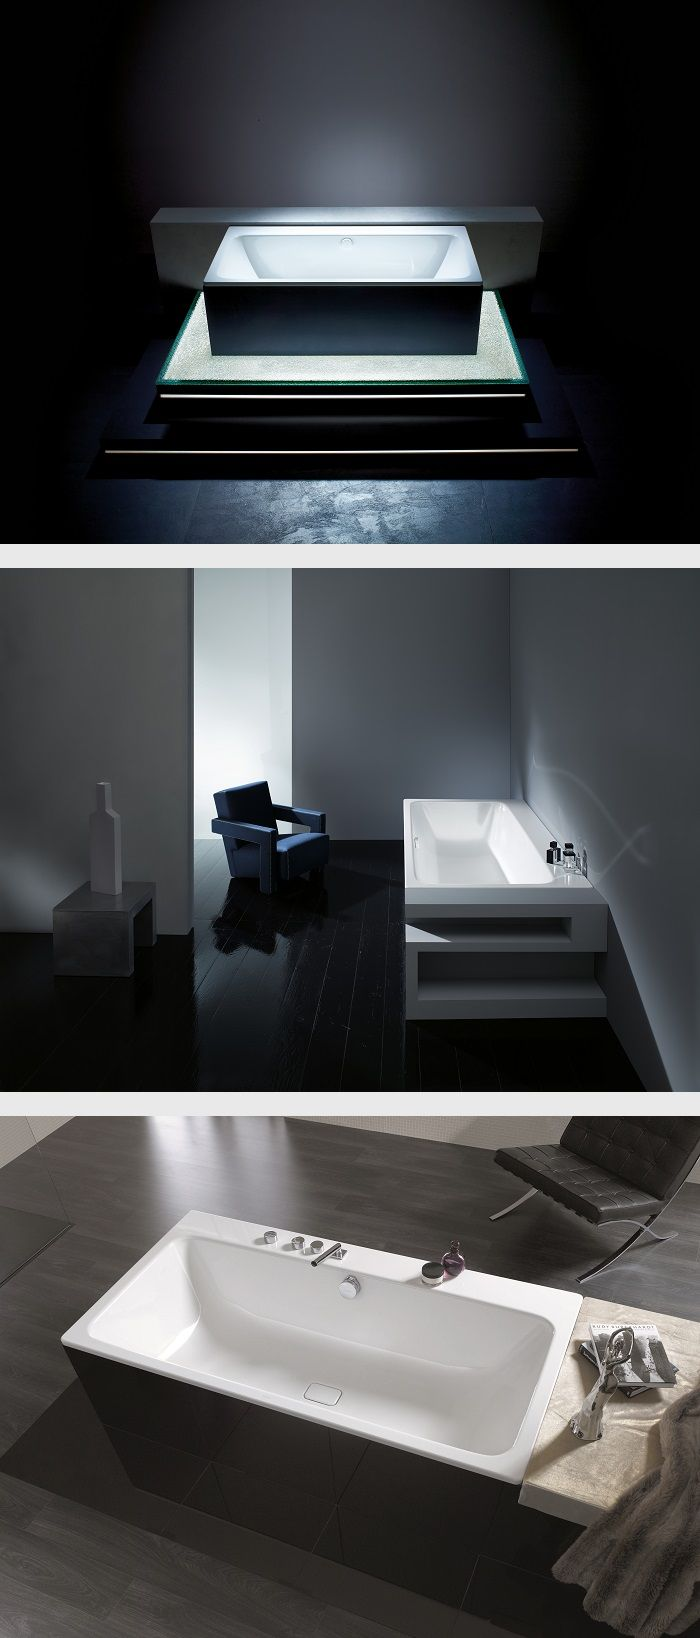 A bath with a comfort zone: with its generously proportioned storage shelf, the ASYMMETRIC DUO also has a spatial dimension. It can be used as a seat or for holding bath utensils, and also for the individual positioning of taps. #Kaldewei #Bathtub #Bath #Badewanne #Badezimmer #Bathroom #AsymmetricDuo